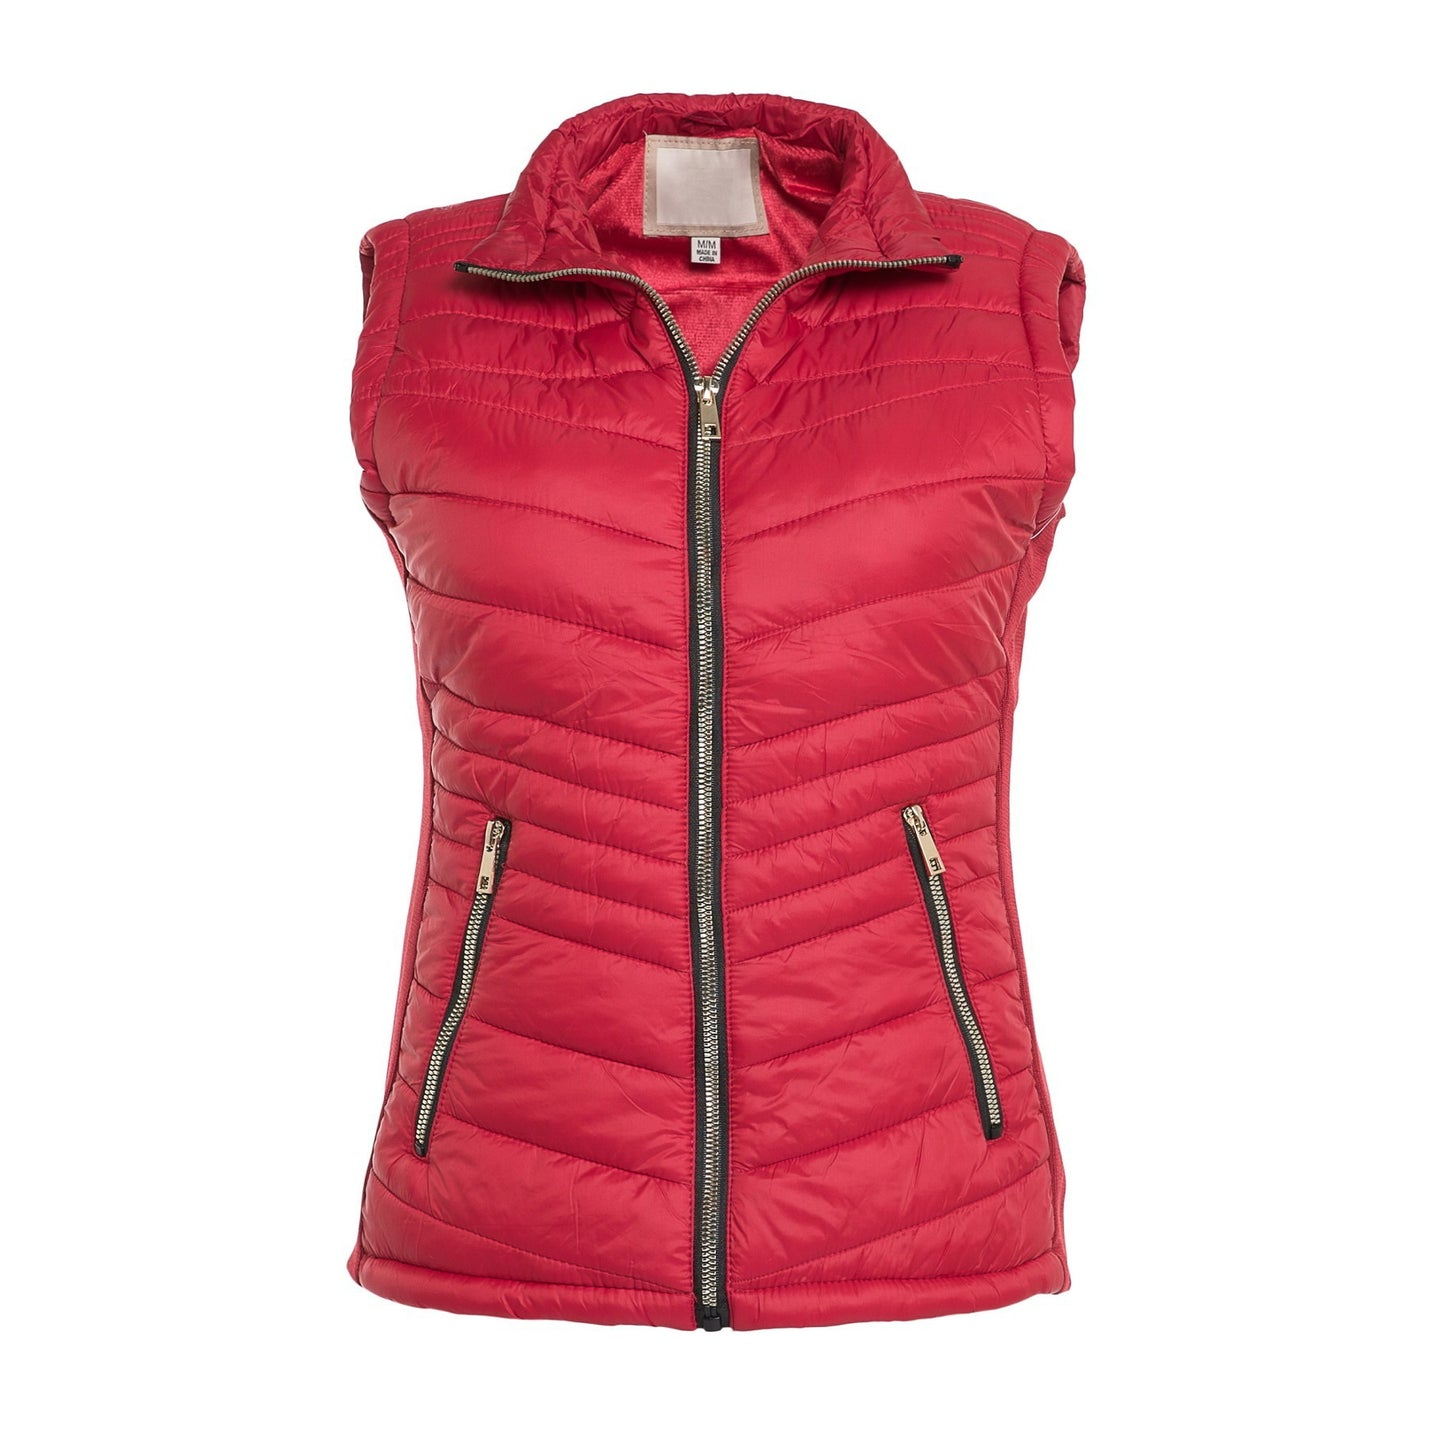 Always Fair Weather Puffer Vest in Red